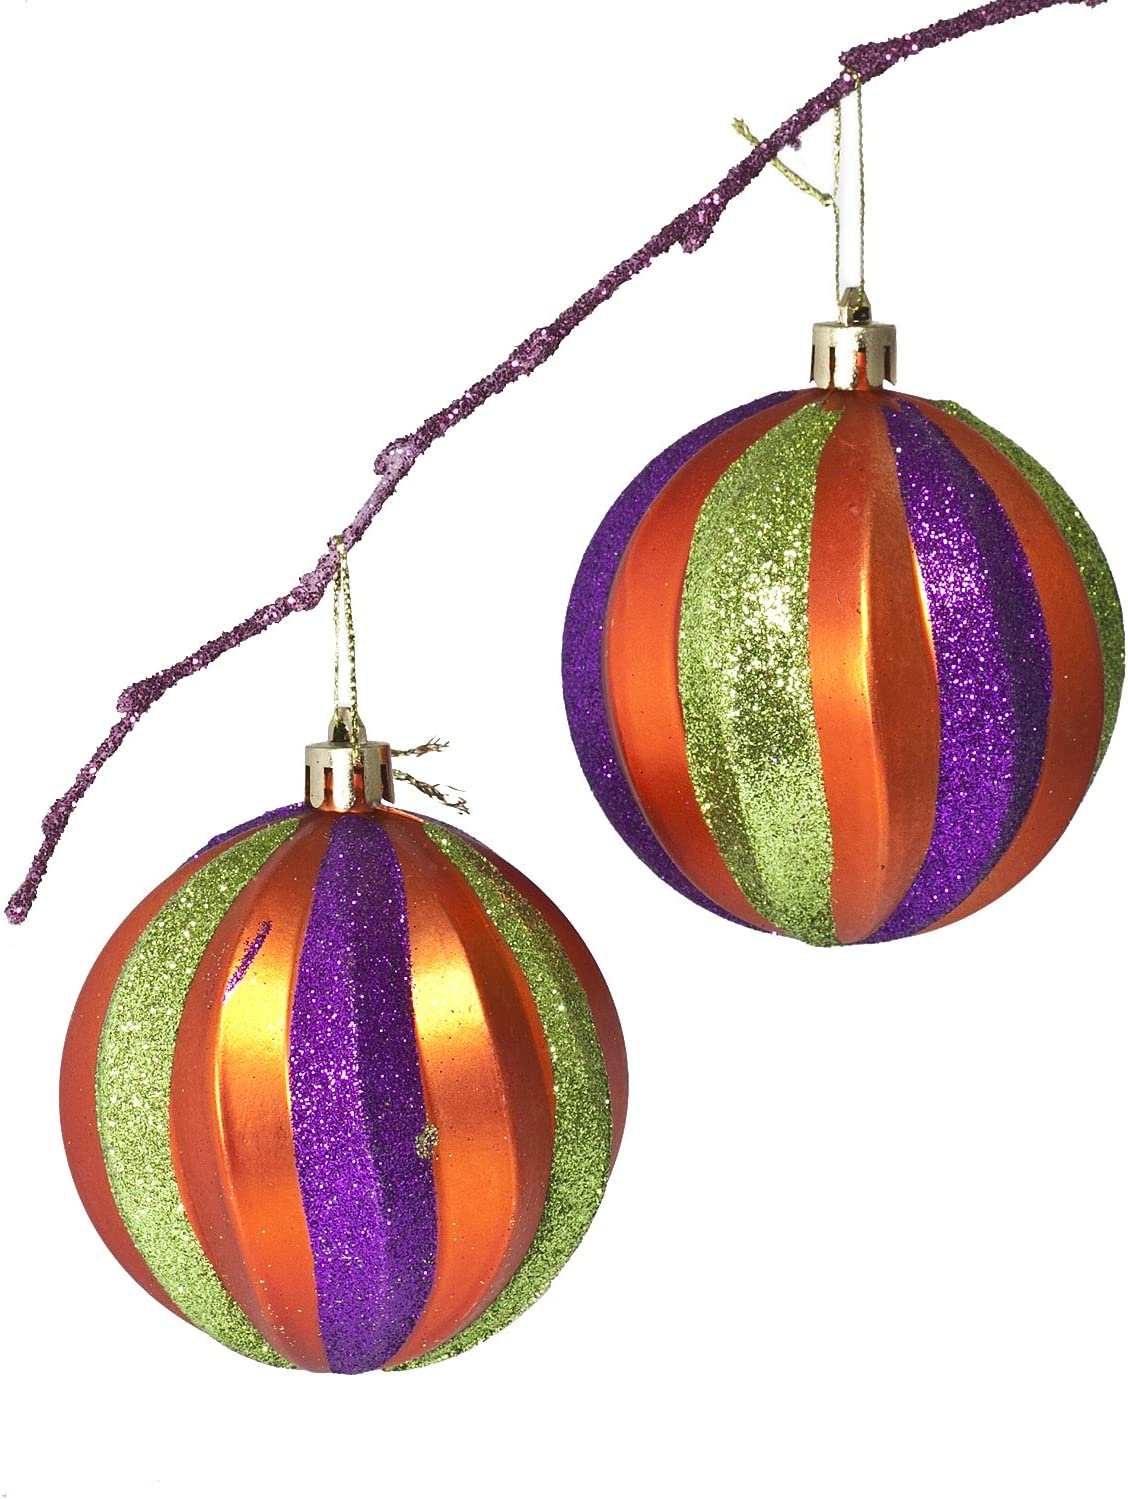 Amazon Com Perfect Holiday Handpainted 2 Piece Shatterproof Christmas Ornament Set 3 14 Inch Matte Orange Ball With Purple And Green Stripe Home Kitchen